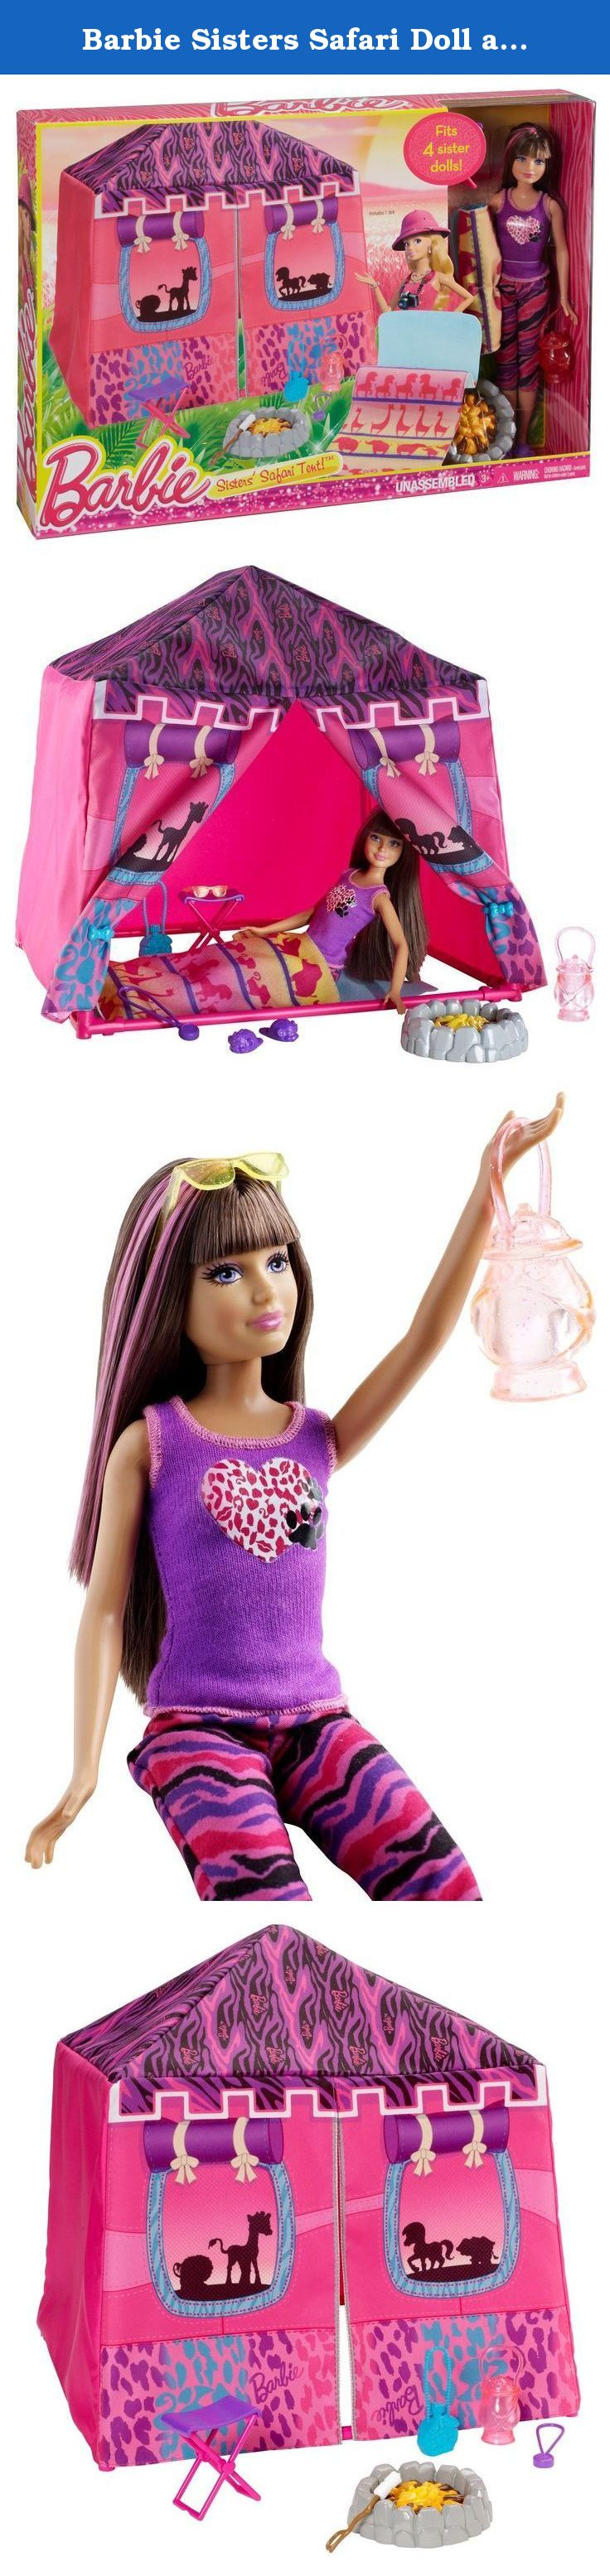 Barbie Sisters Safari Doll and Tent Playset. Barbie Sisters Safari Doll and Tent Playset  sc 1 st  Pinterest & Barbie Sisters Safari Doll and Tent Playset. Barbie Sisters Safari ...